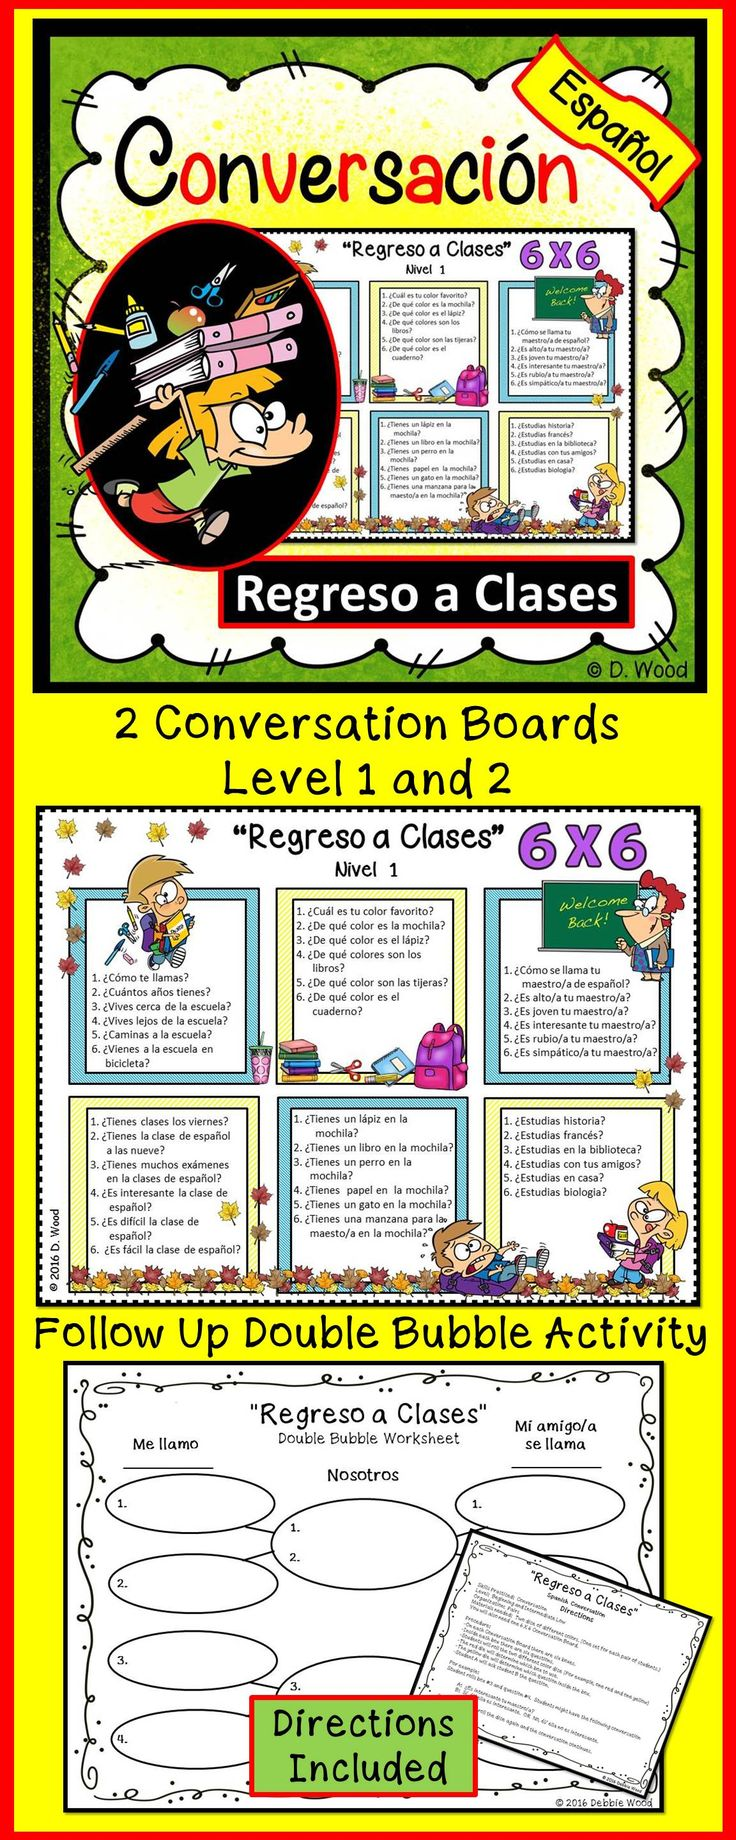 Spanish Conversation Boards for Back to School. A fun and engaging conversation activity for students to communicate in the target language.